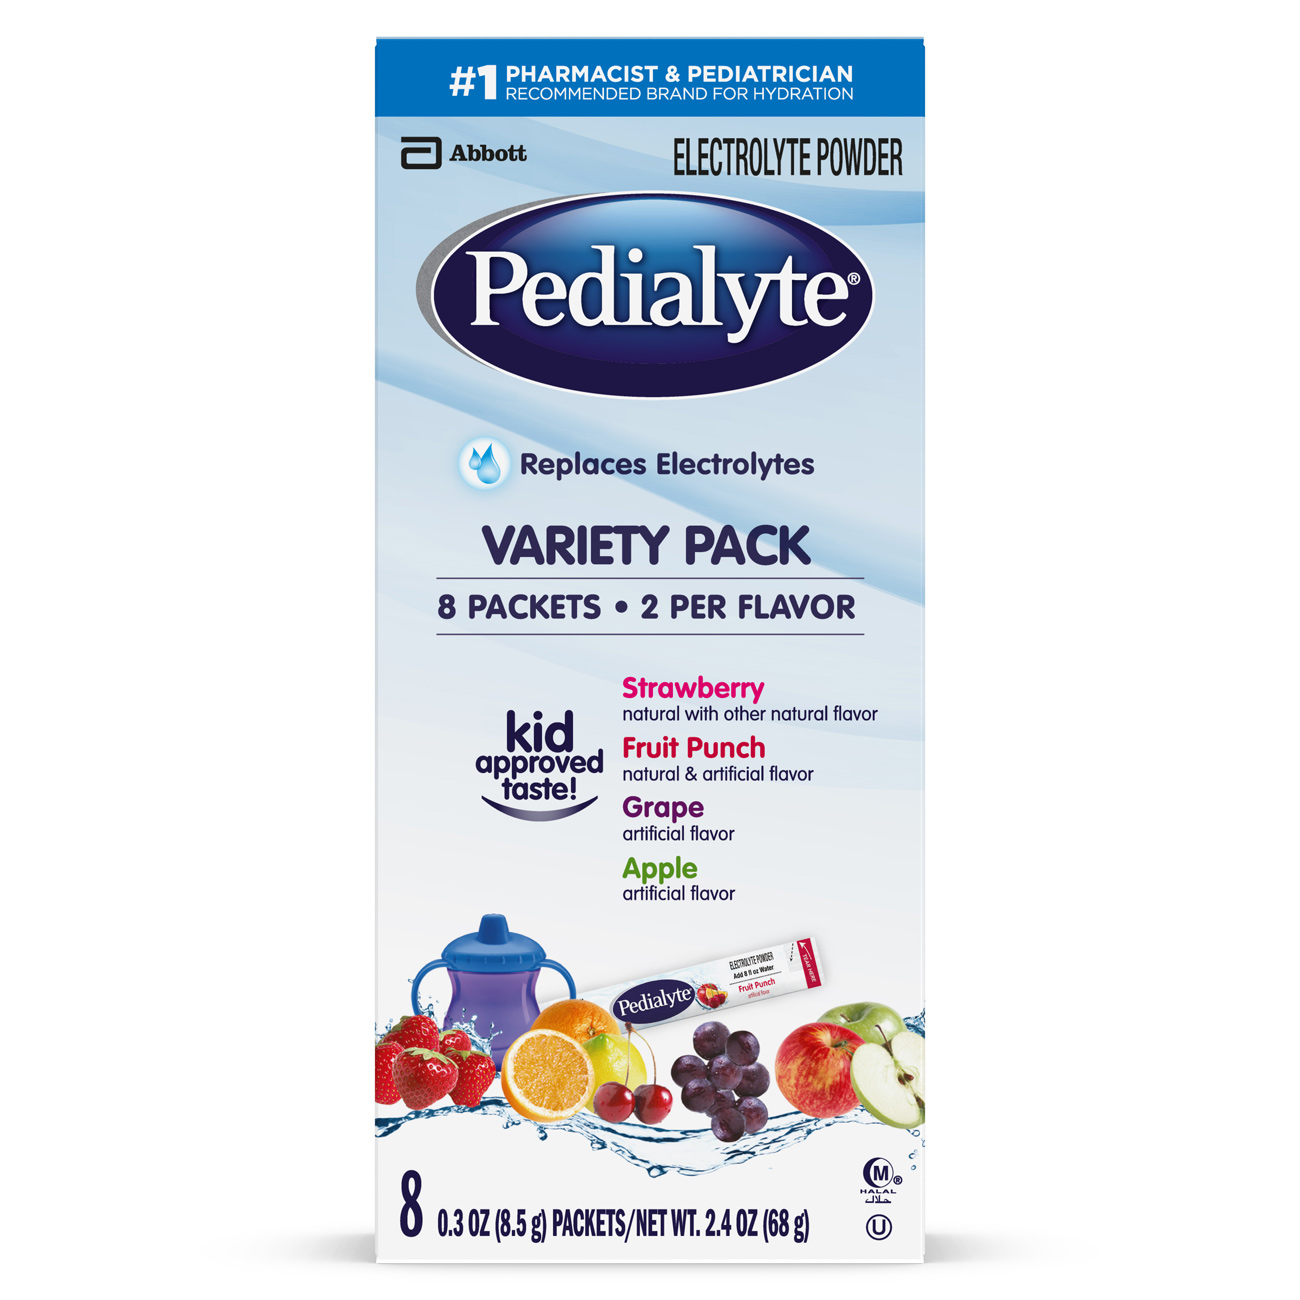 Pedialyte Electrolyte Powder, Electrolyte Drink, Variety Pack, Powder Sticks, 0.3 oz (Pack of 8)